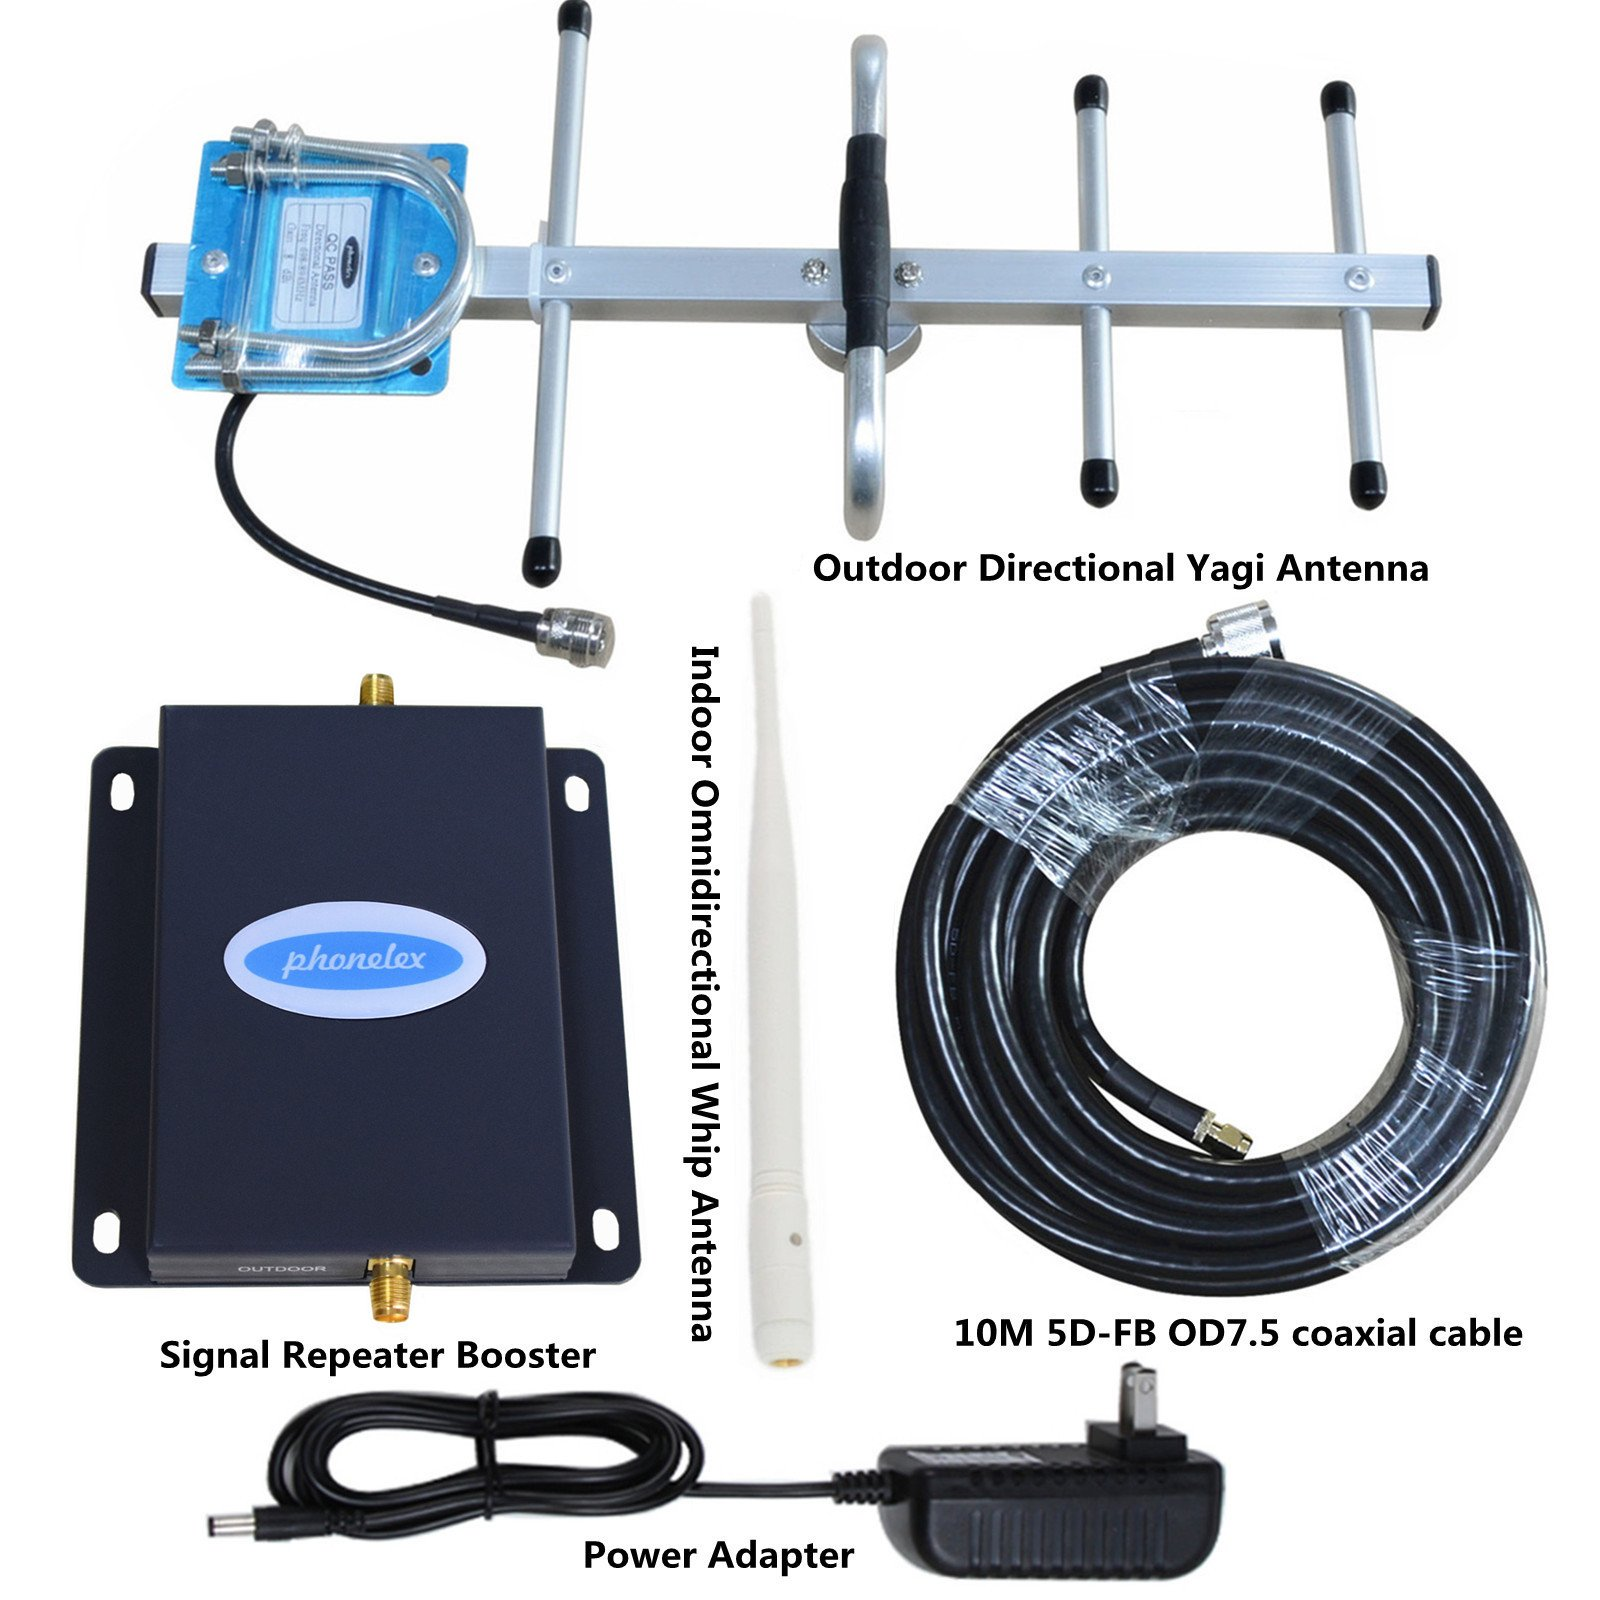 Cell Phone Signal Amplifier AT&T 4G LTE 700Mhz Band12/17 Phonelex Mobile Booster Repeater with Outside YaGi Directional and Inside Whip antennas Kits by phonelex (Image #8)